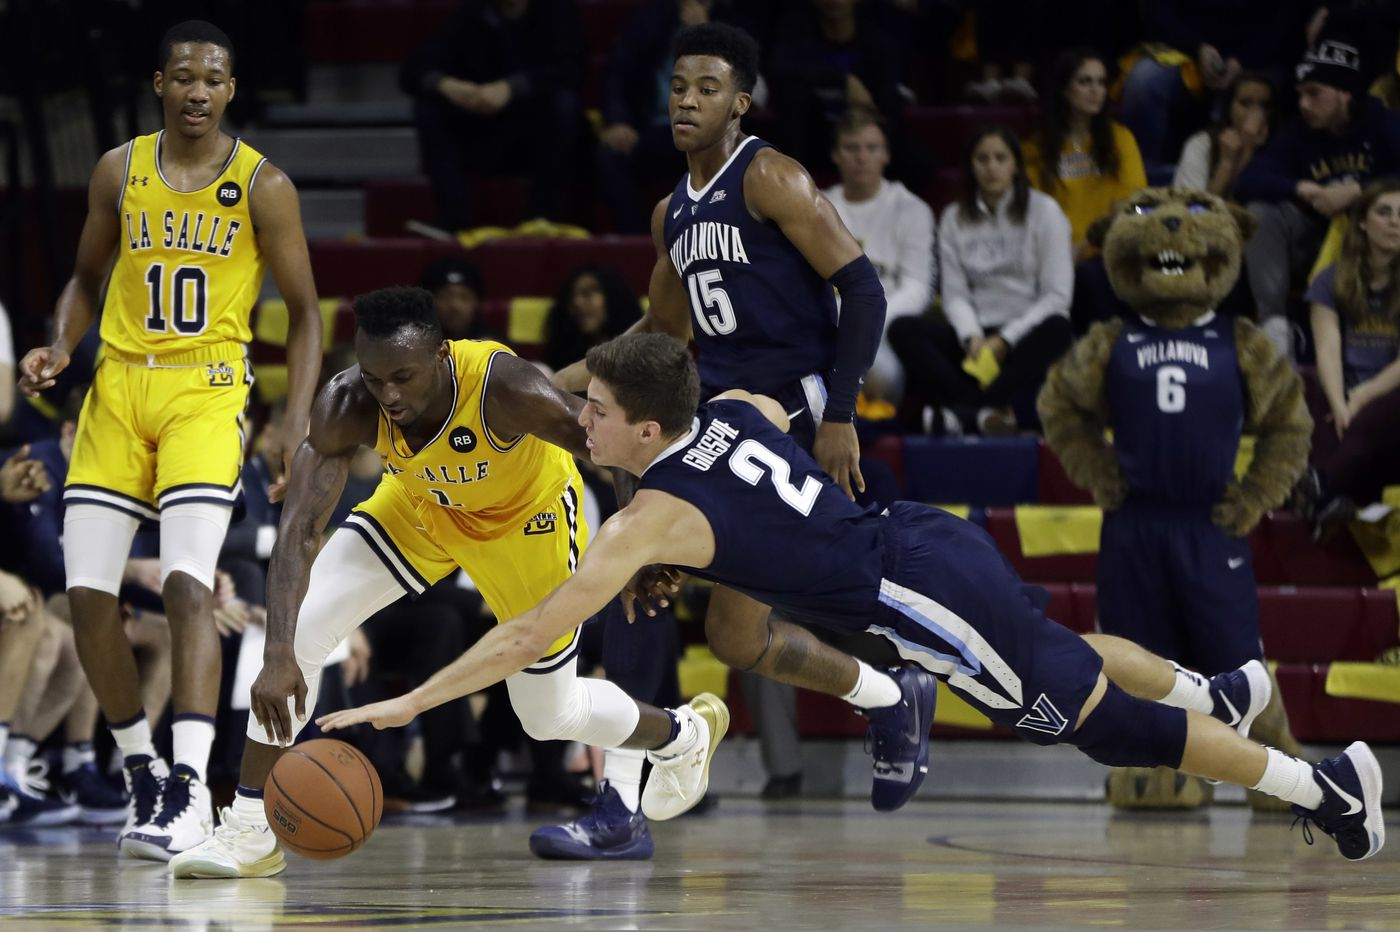 Villanova, and especially La Salle, created memorable day at the Palestra